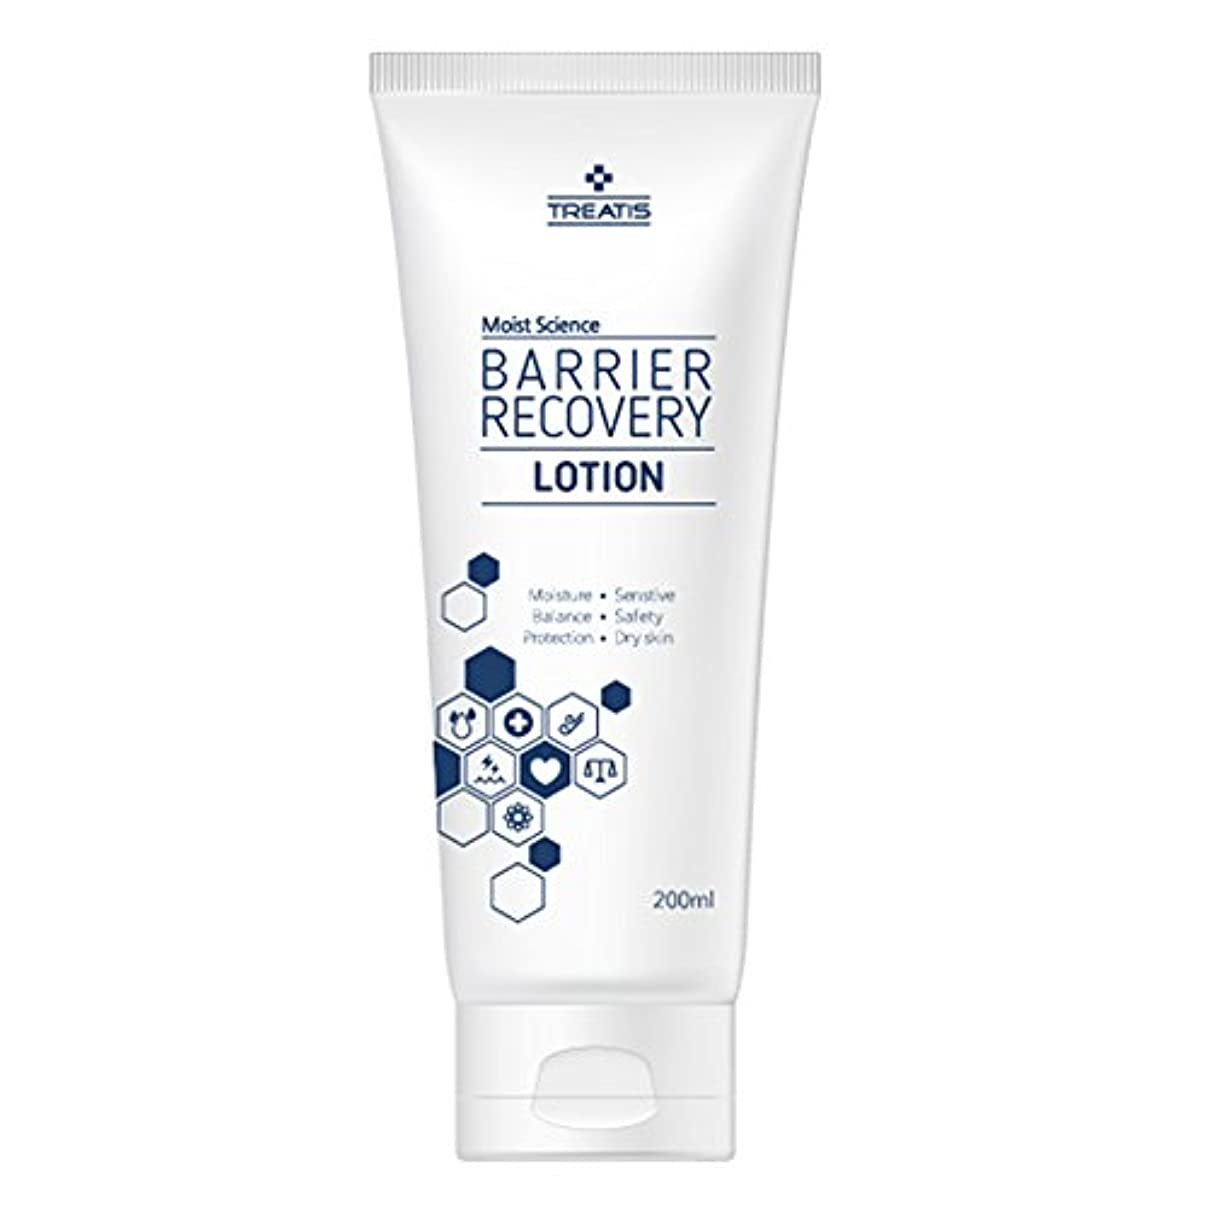 それから香水経験Treatis barrier recovery lotion 7oz (200ml)/Moisture, Senstive, Balance, Safty, Protection, Dry skin [並行輸入品]